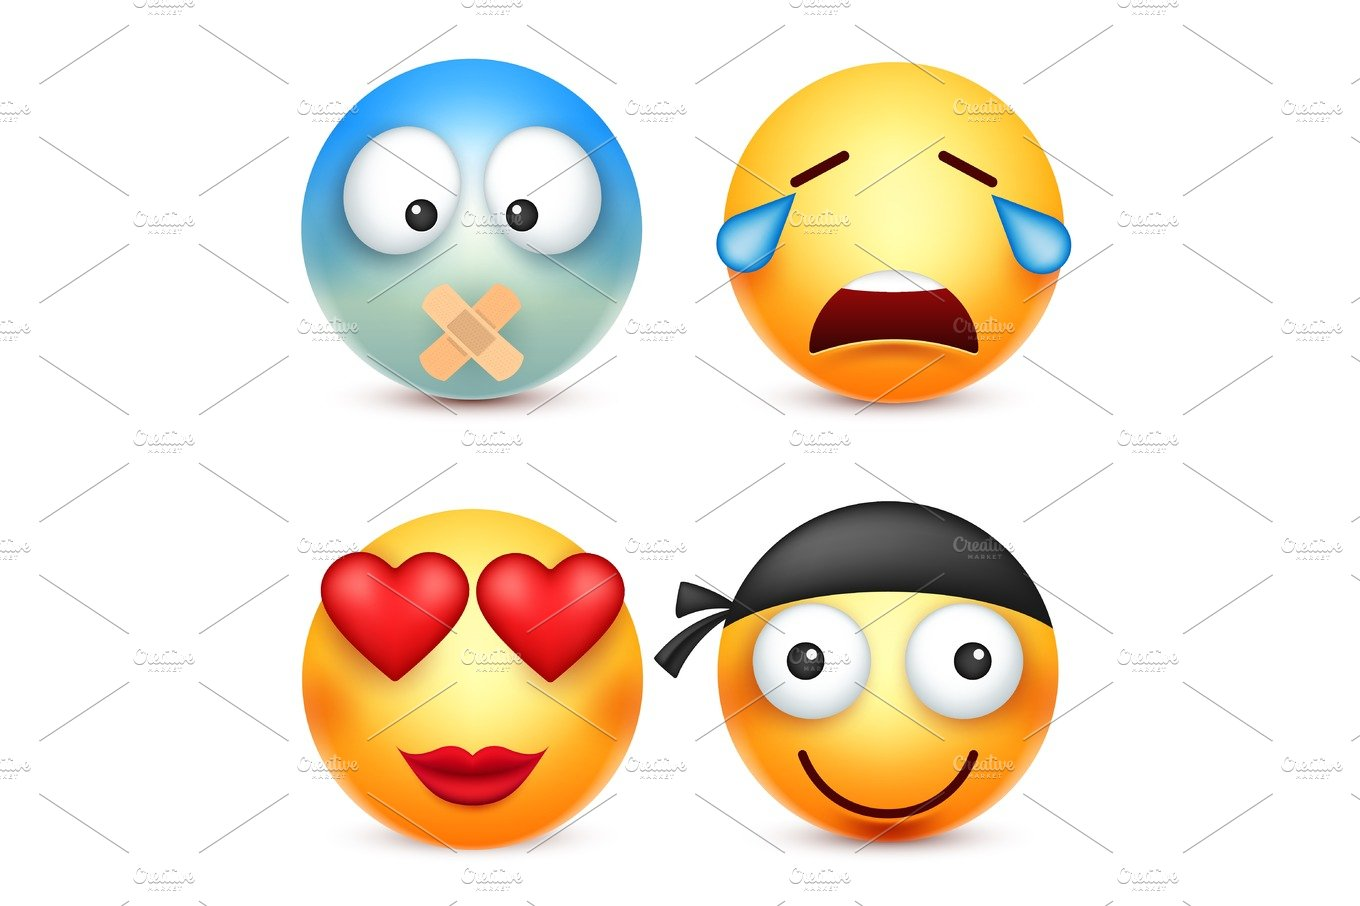 Smiley,emoticons set  Yellow face with emotions  Facial expression  3d  realistic emoji  Funny cartoon character Mood  Web icon  Vector  illustration